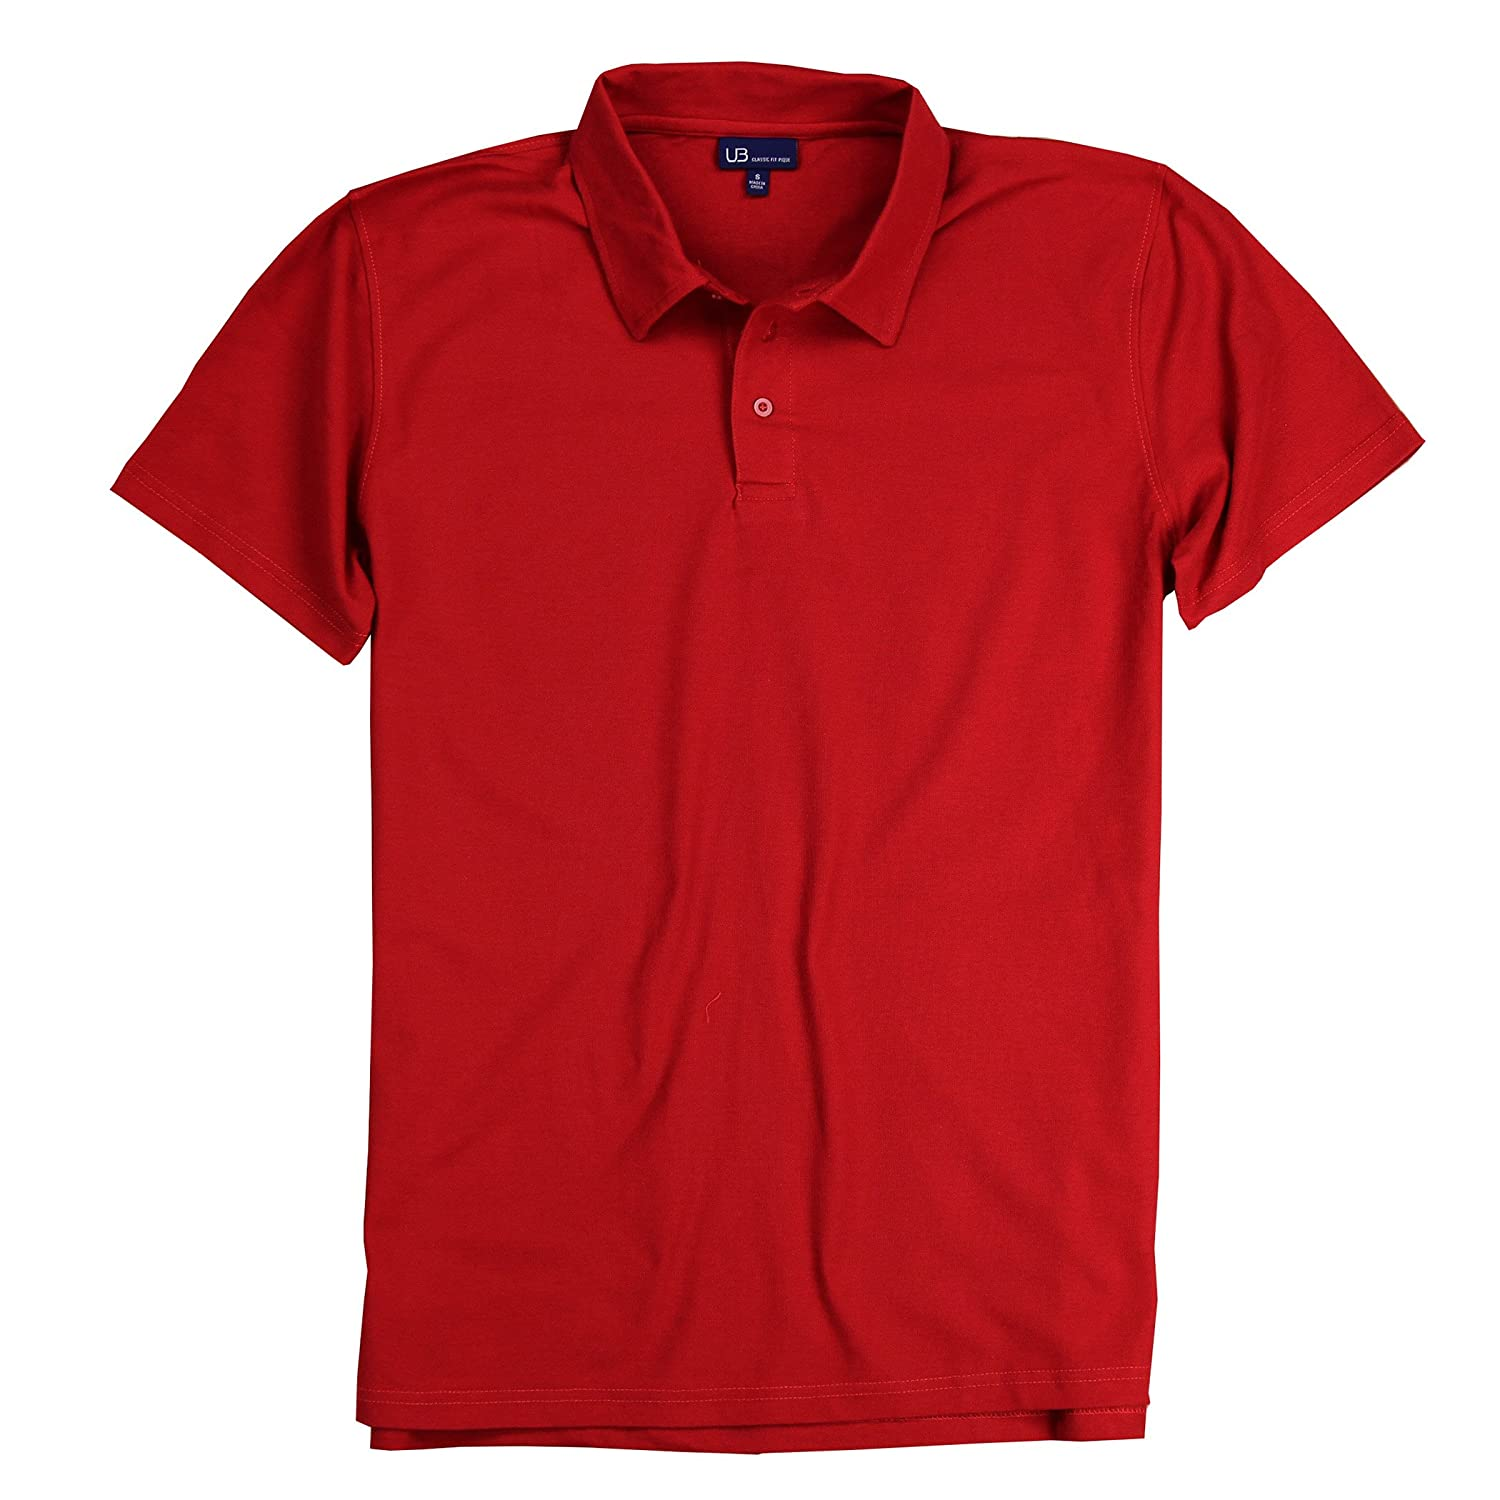 Men's Classic Fit Pique Polo